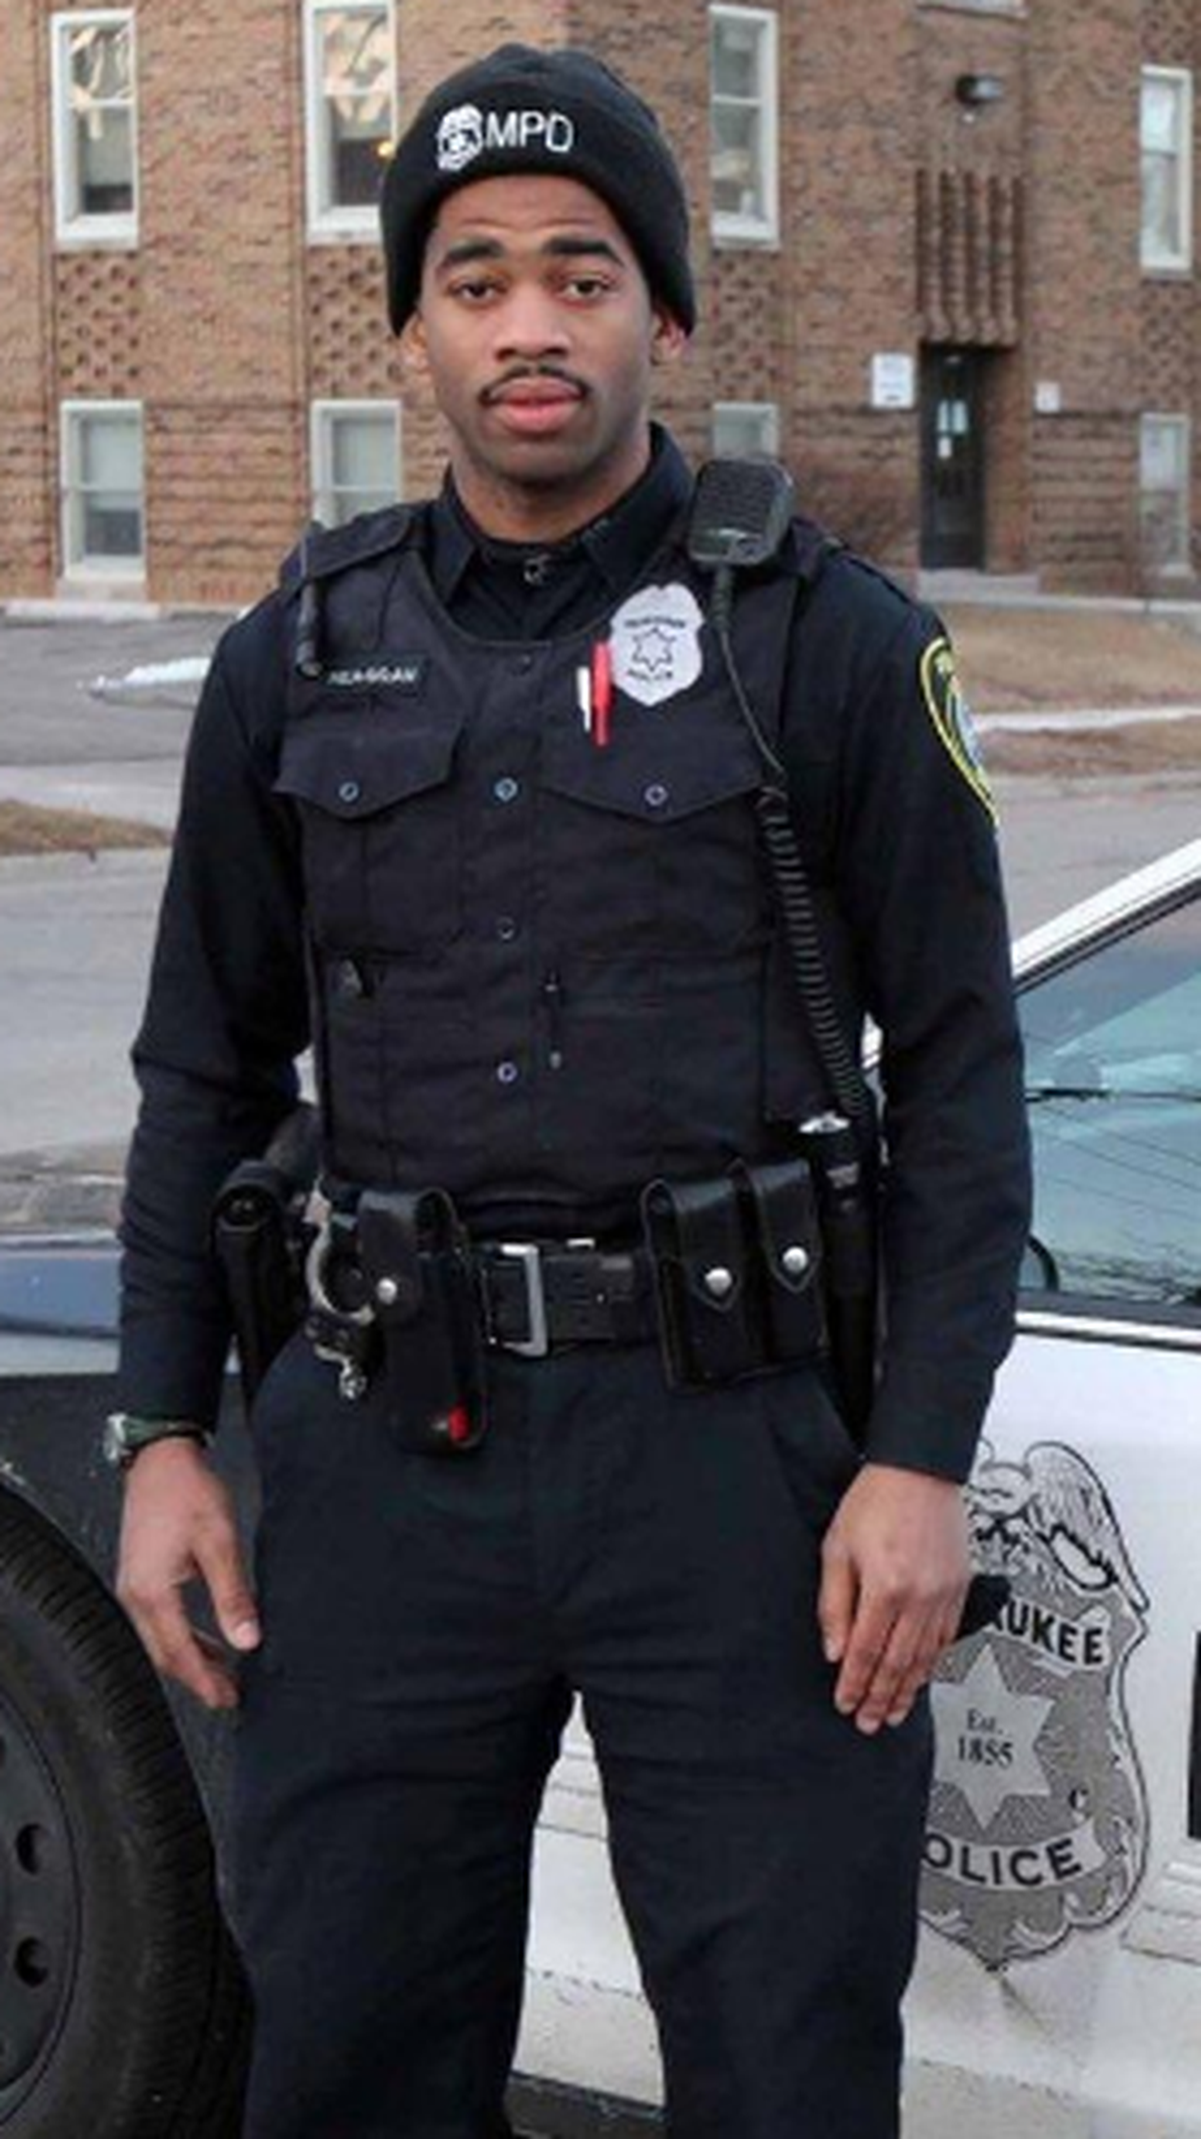 Picture of cop who shot Milwaukee teen released